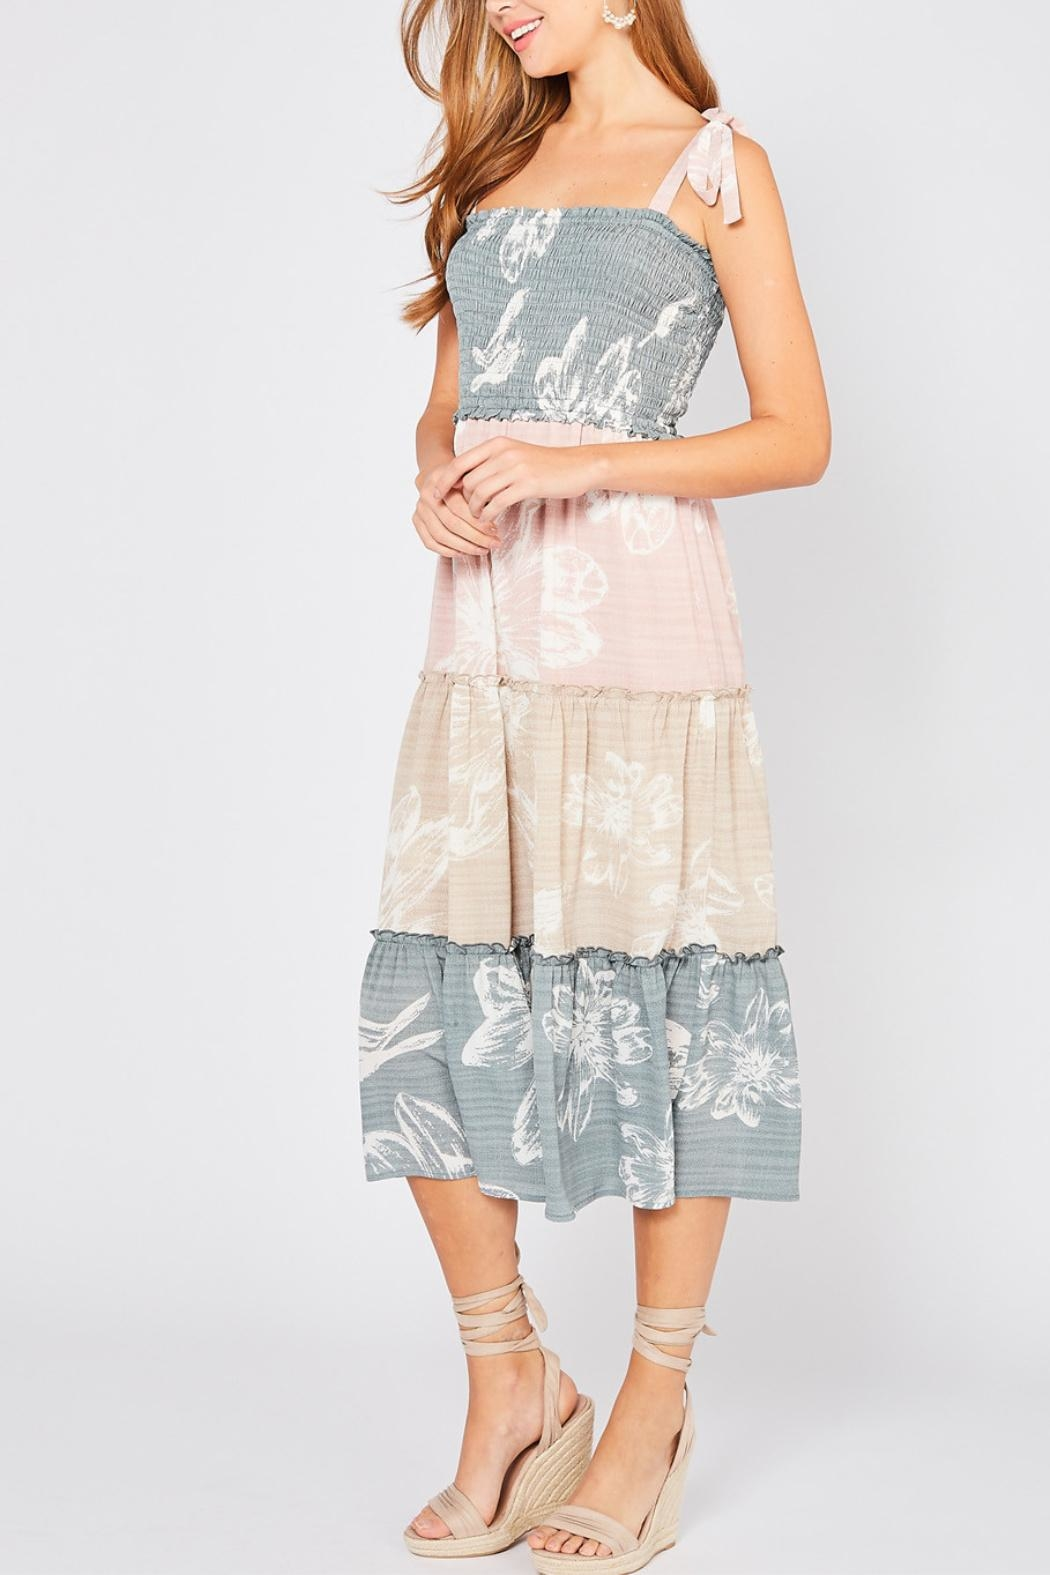 Entro Colorblocked Floral Dress - Front Full Image